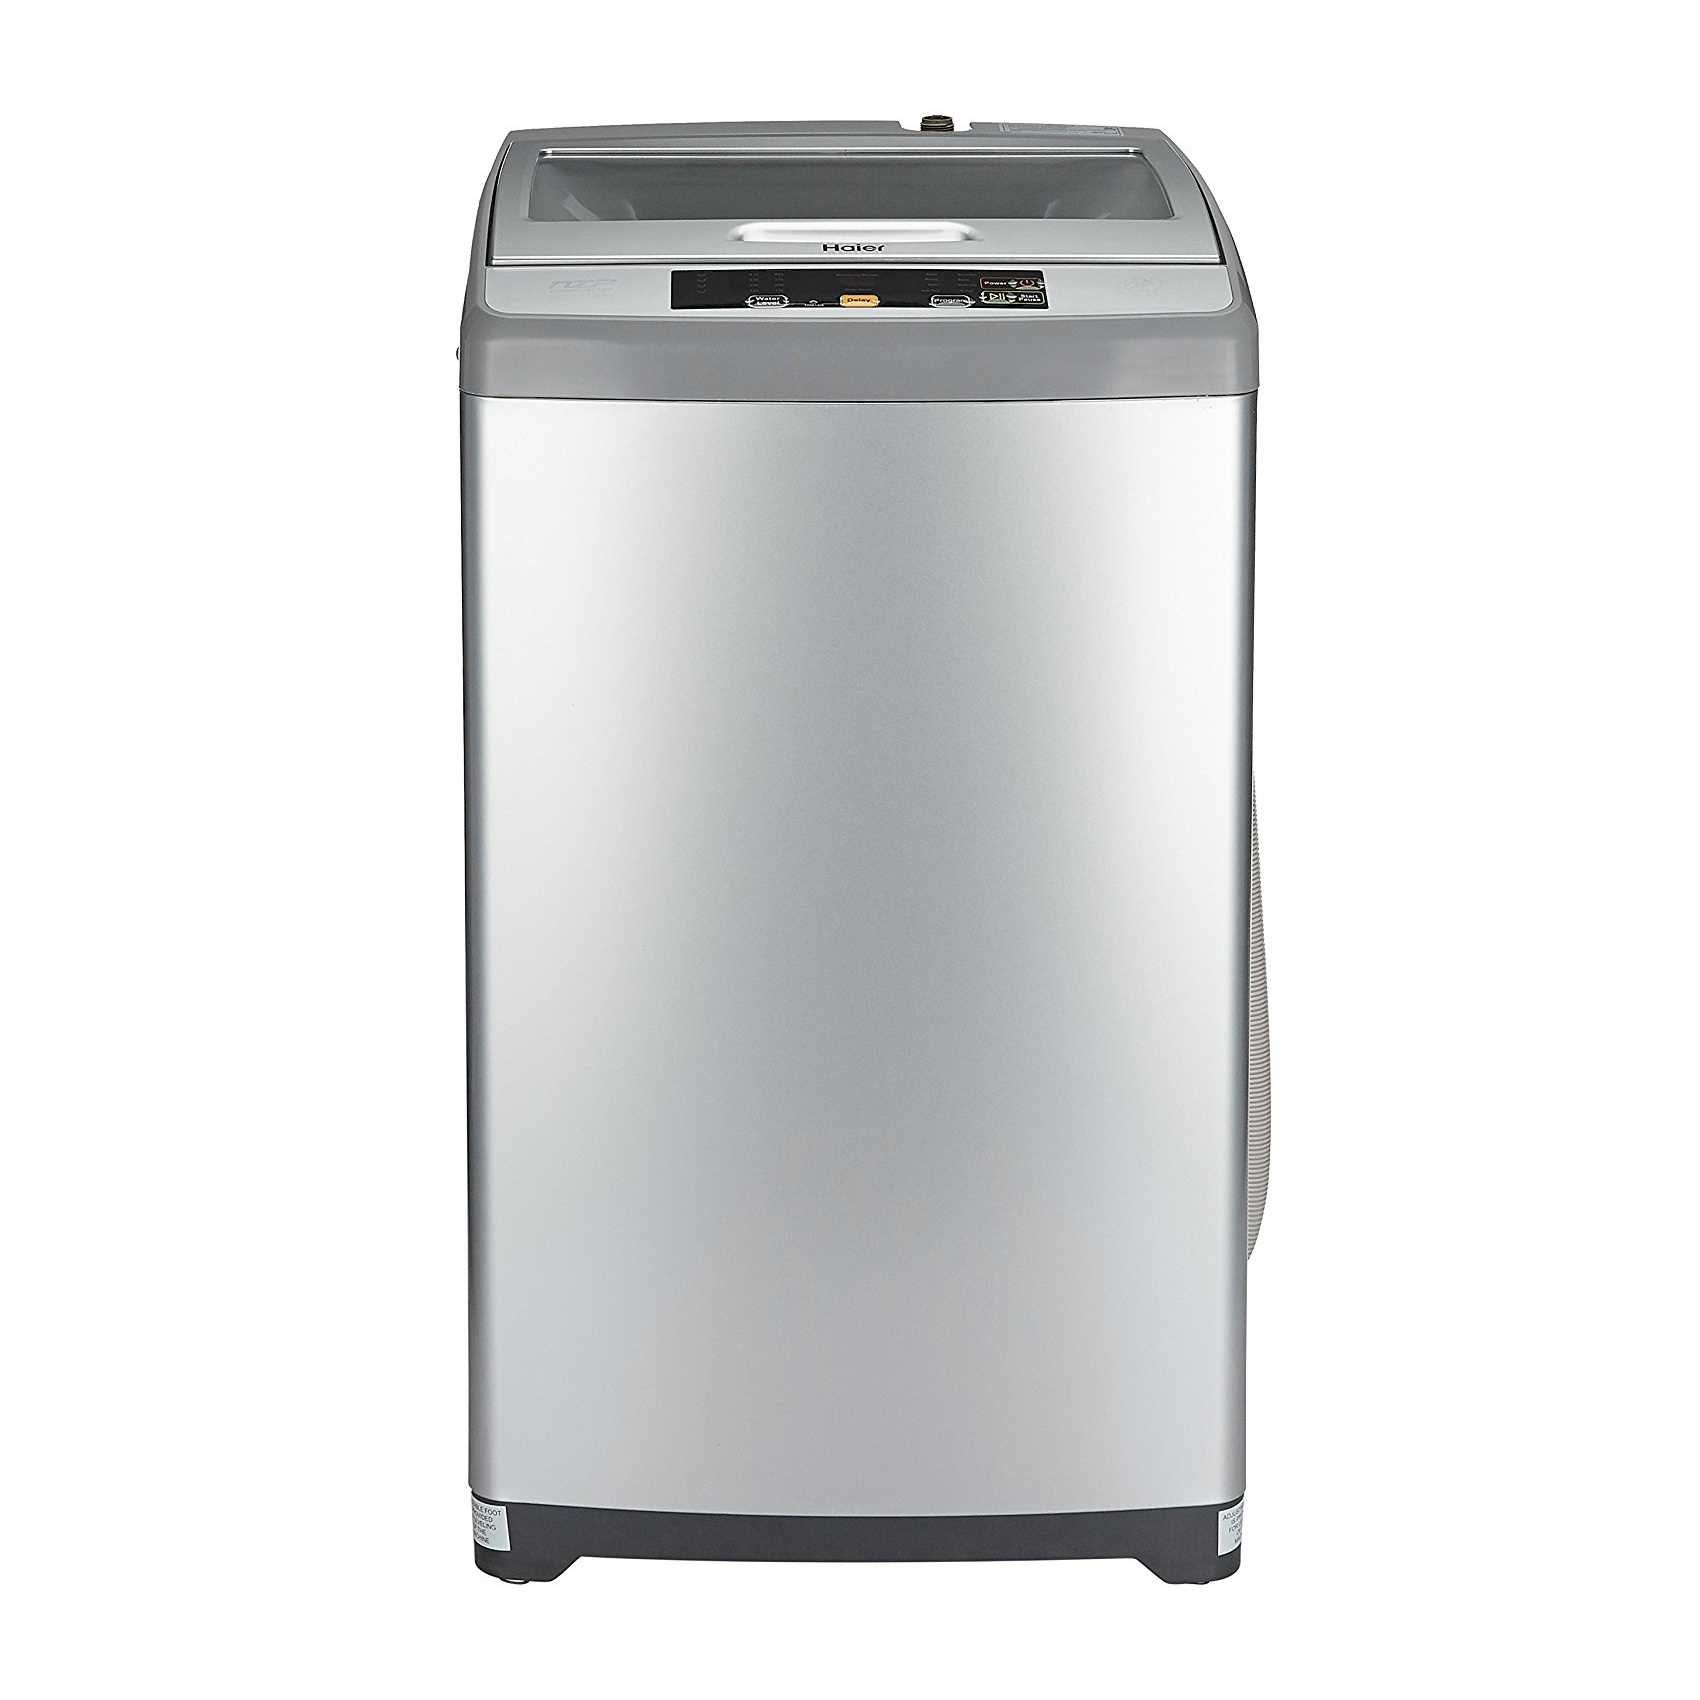 Haier HWM62-707NZP 6.2 Kg Fully Automatic Top Loading Washing Machine